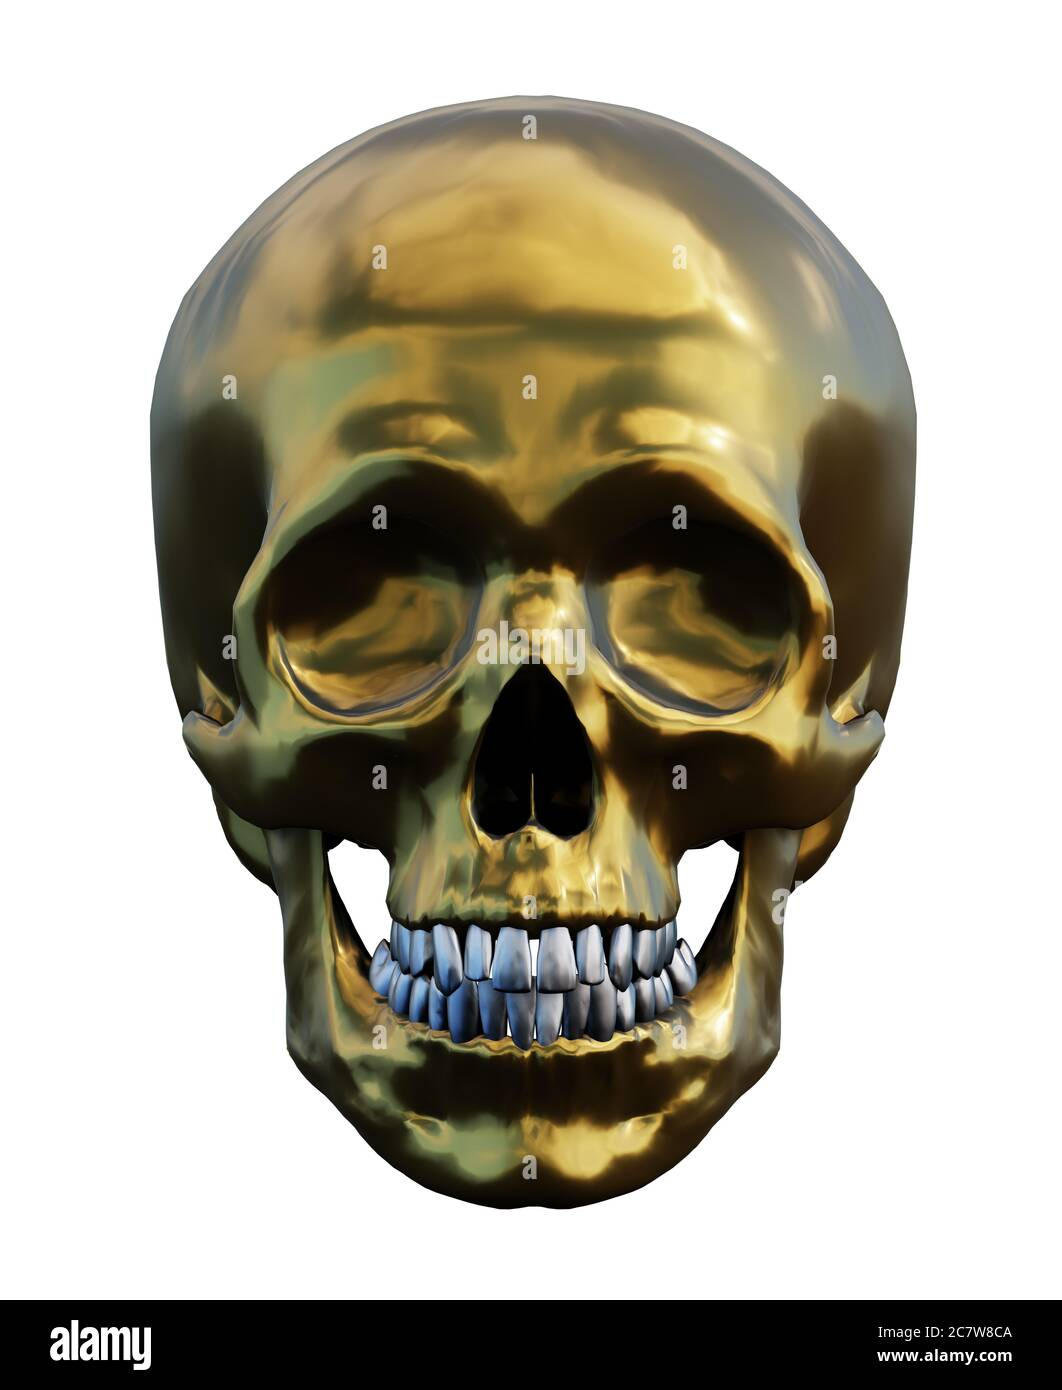 human golden skull isolated on white, front view, 3d render Stock Photo